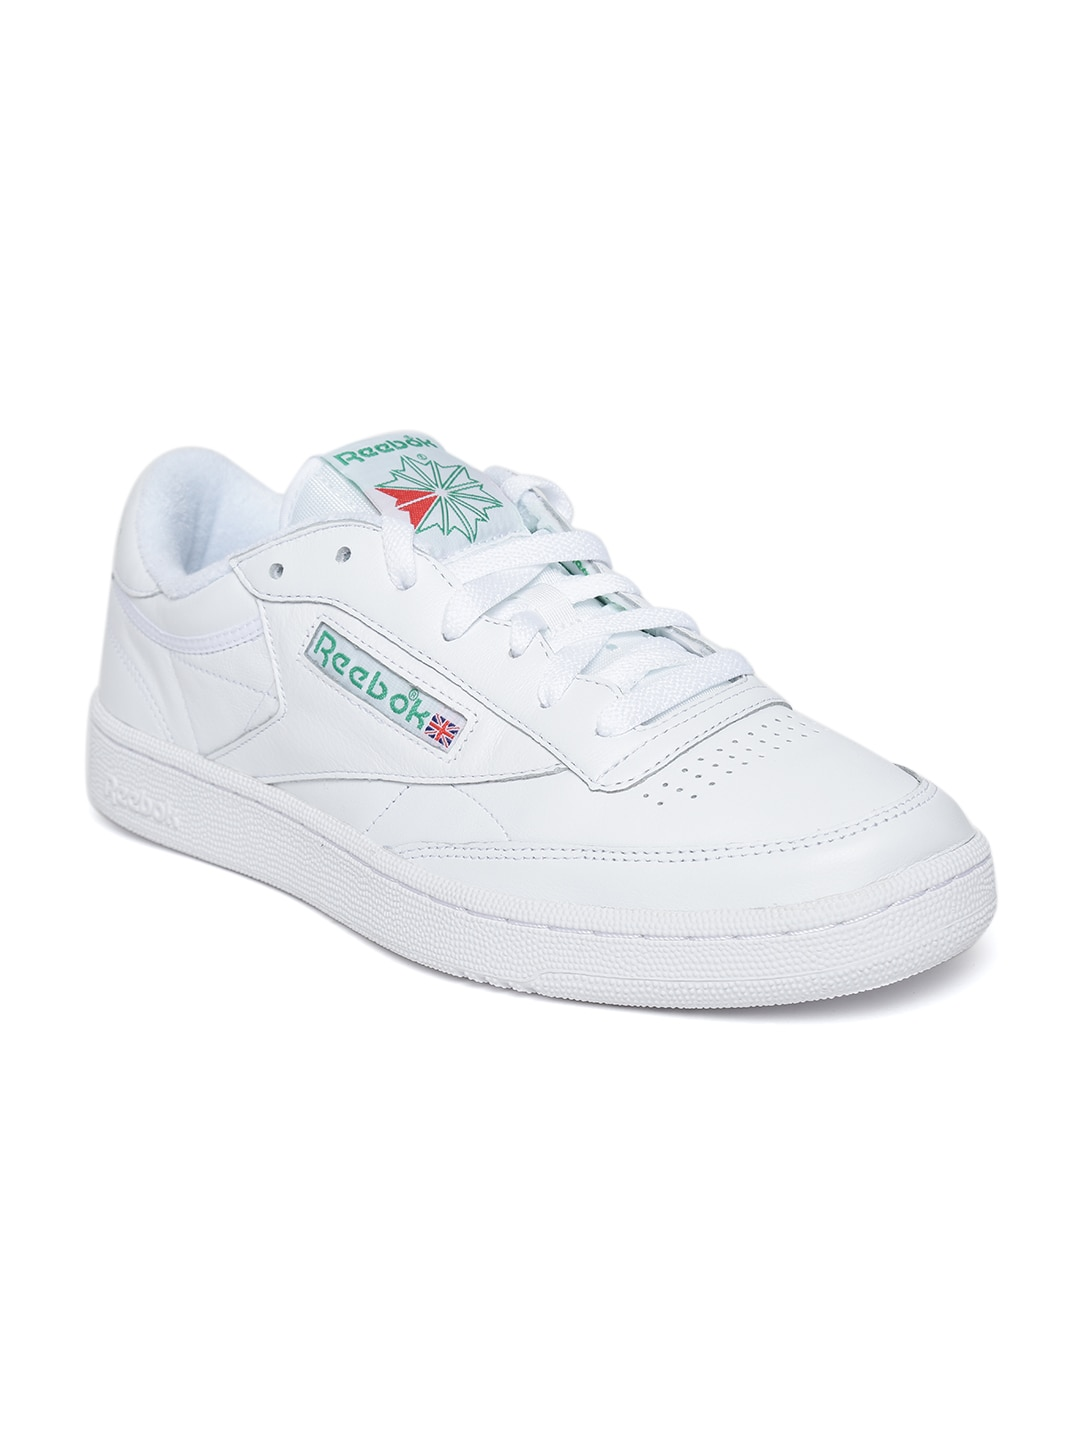 fbcd3f29159 Buy Reebok Classic Men White Royal Complete CLN Sneakers - Casual ...